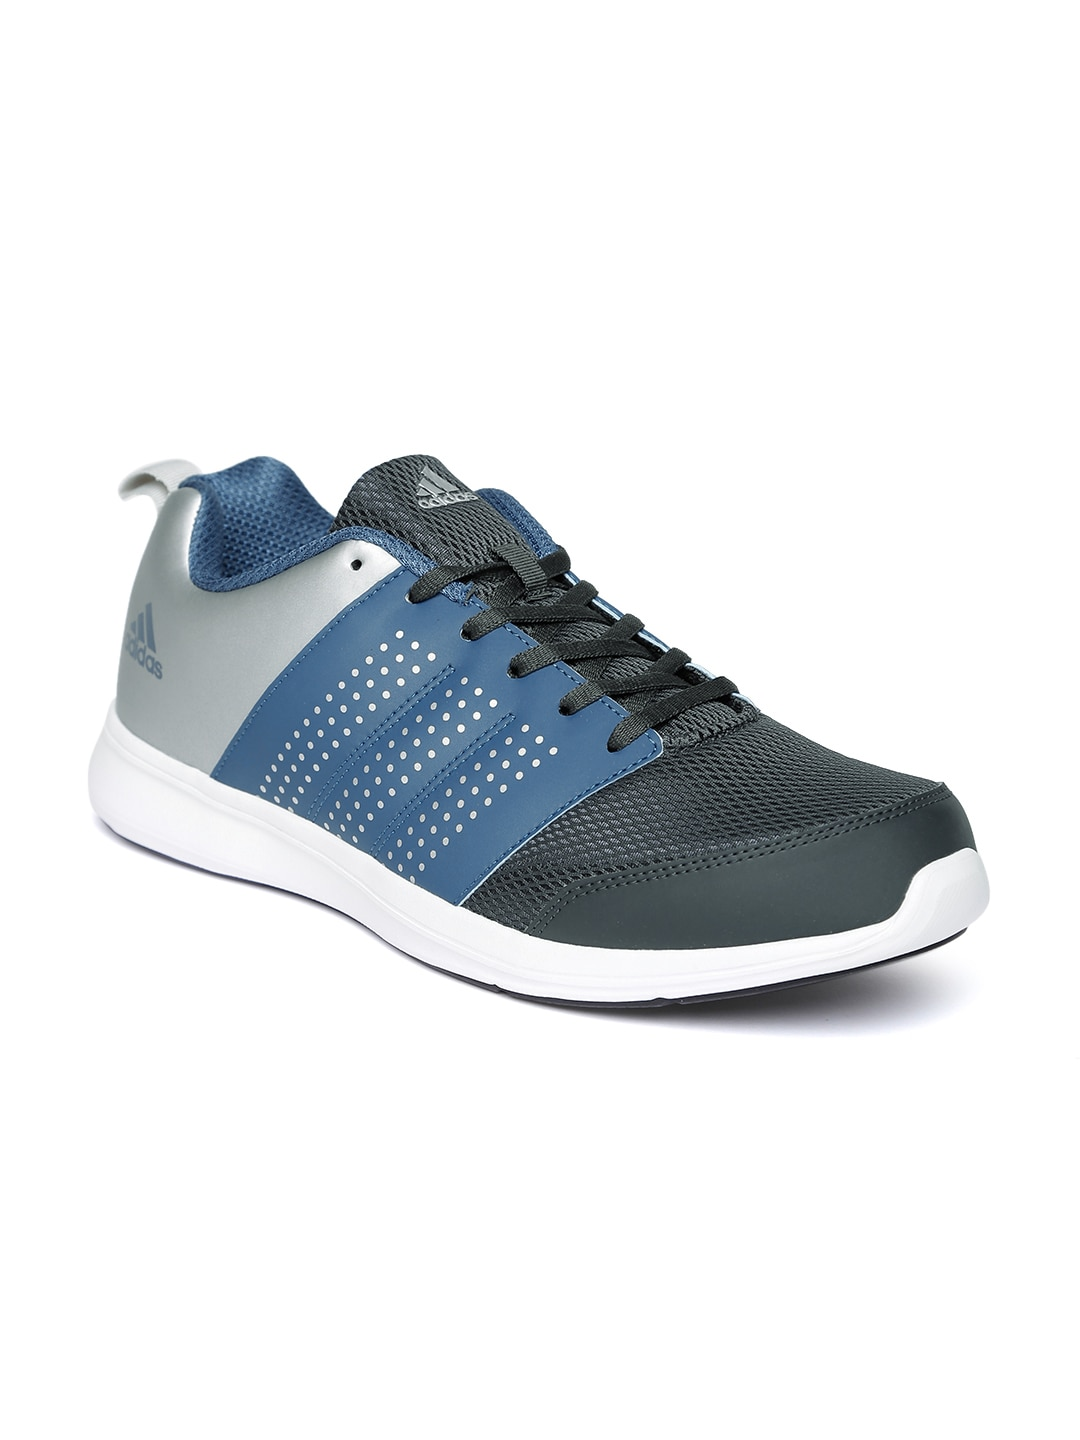 Adidas Shoes All Models